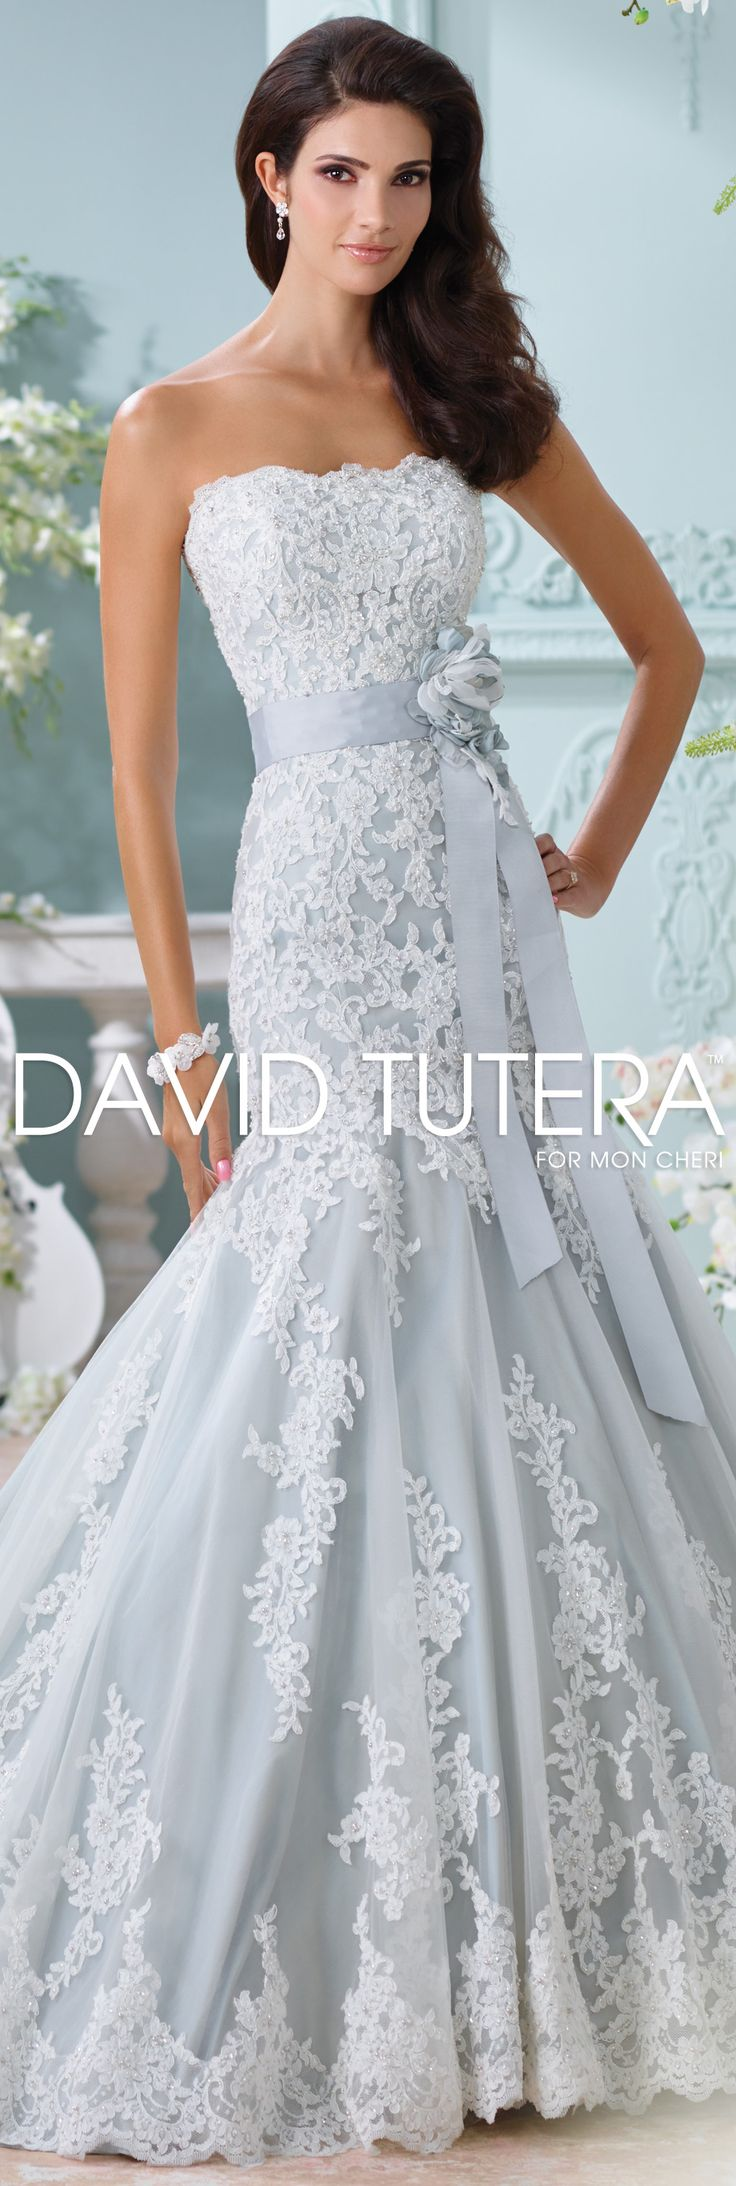 25 best ideas about blue wedding gowns on pinterest for David tutera beach wedding dresses